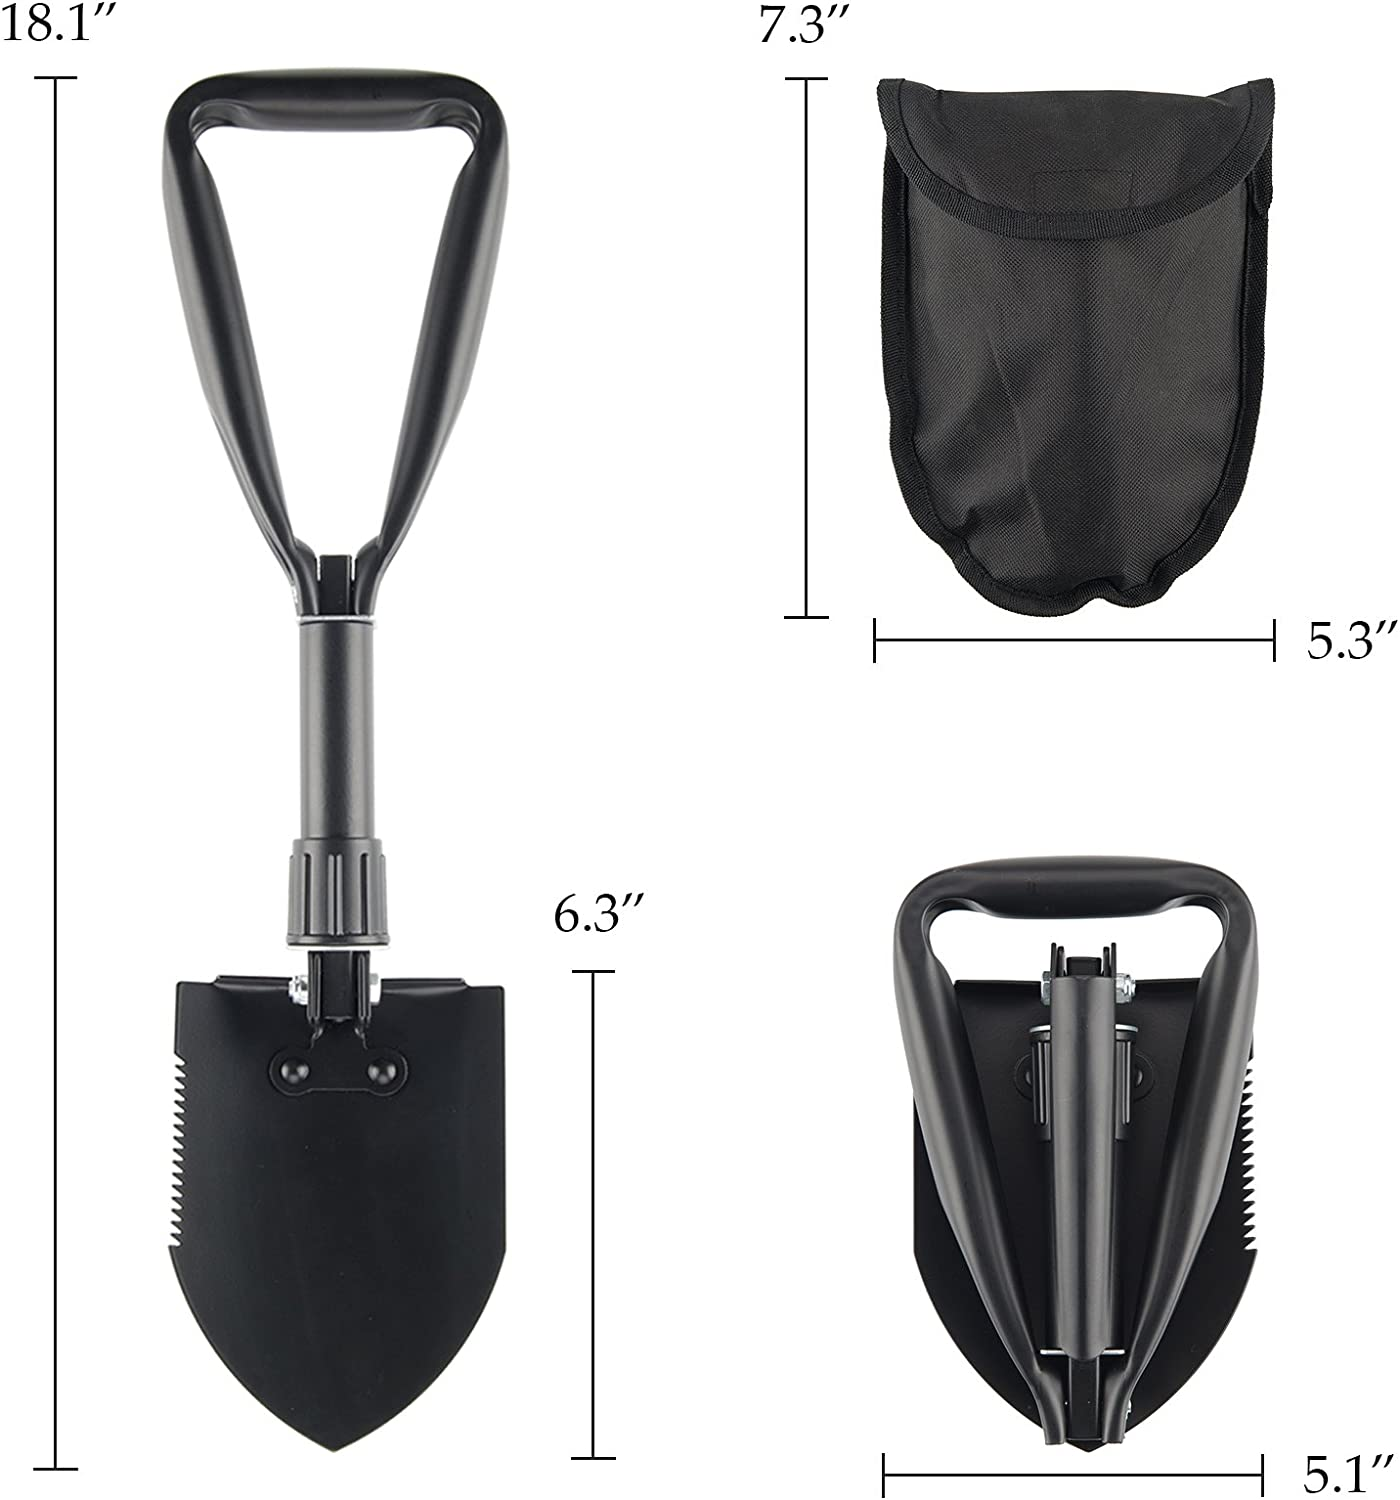 CO-Z Mini Folding Shovel High Carbon Steel Portable Lightweight Outdoor Survival Shovel Camping Backpacking Nylon Carry Case Digging Car Emergency Hiking